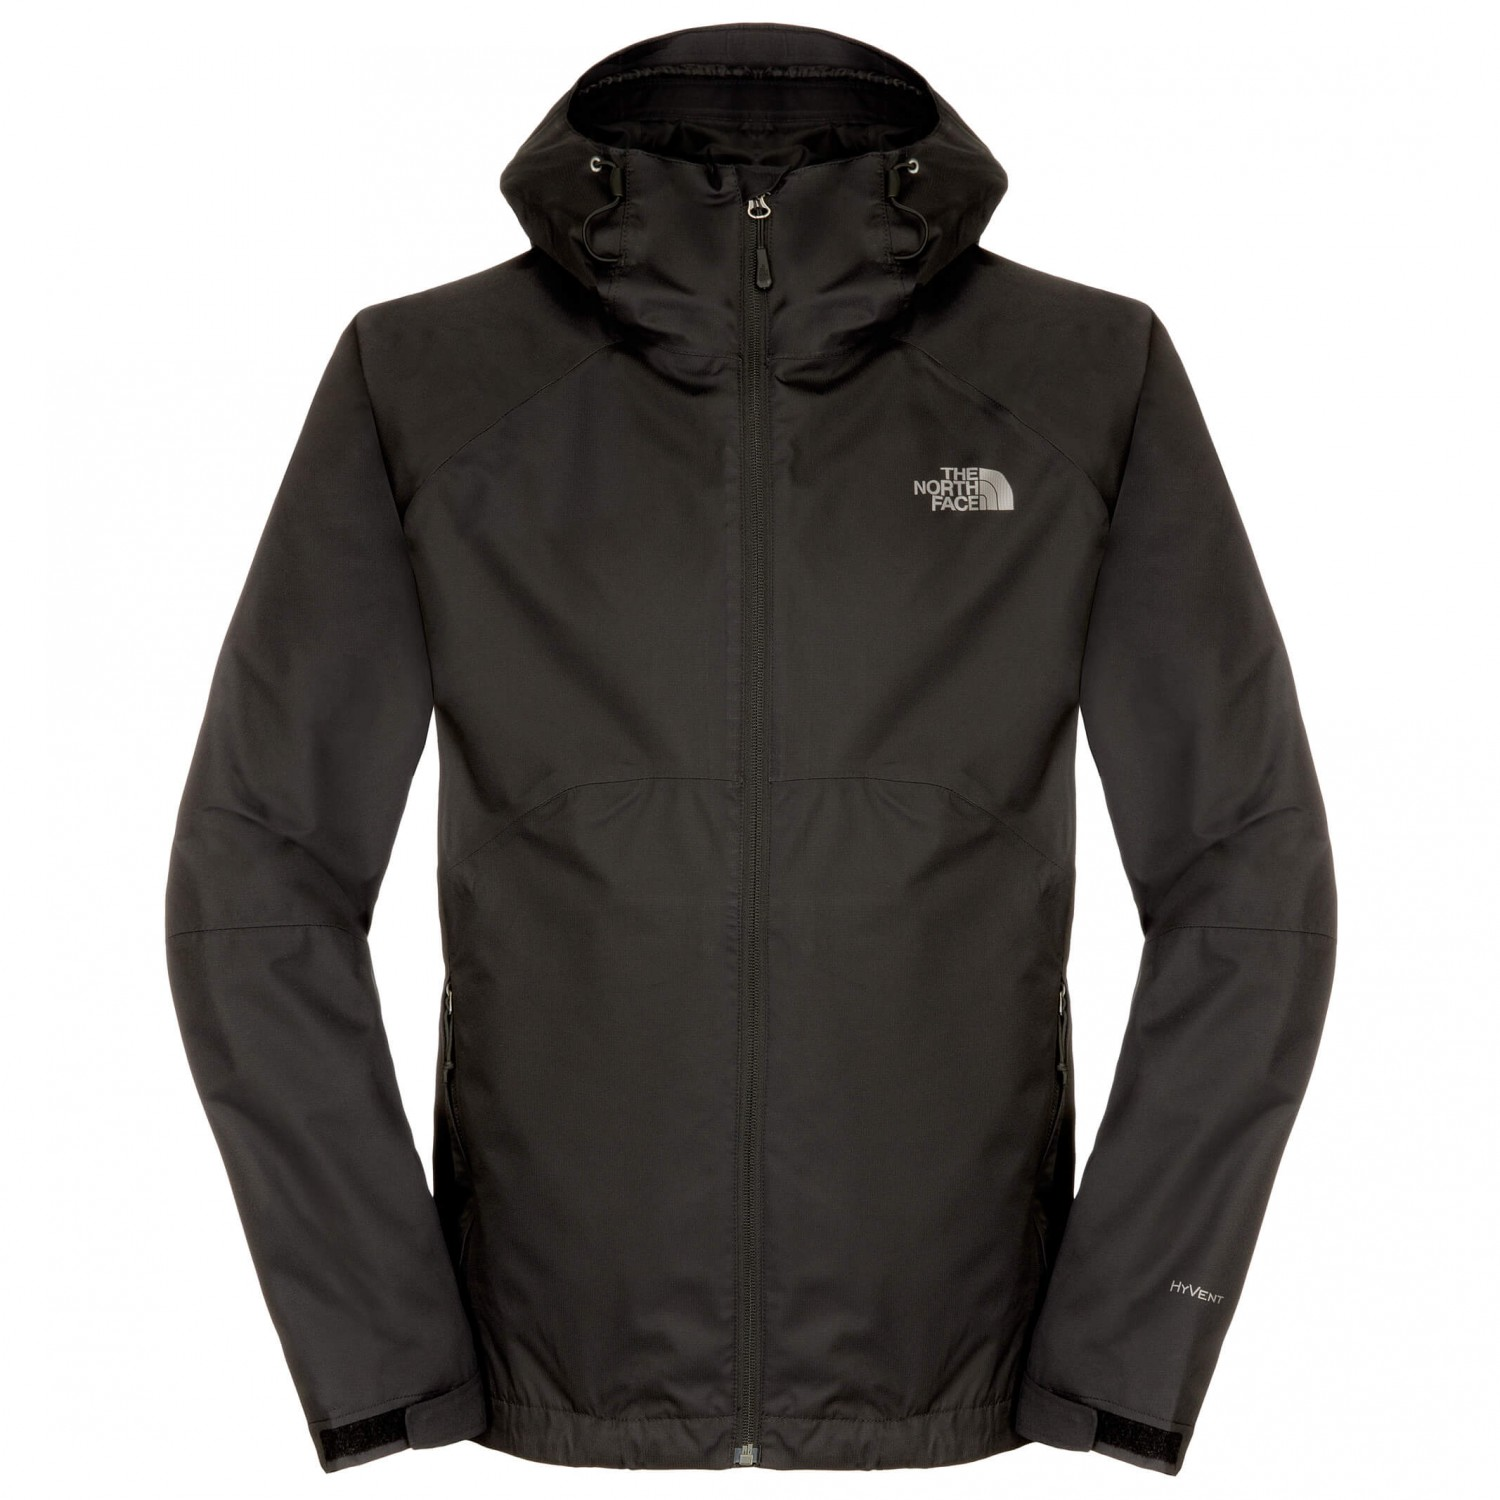 promo code 33bb3 b93c2 The North Face - Sequence Jacket - Waterproof jacket